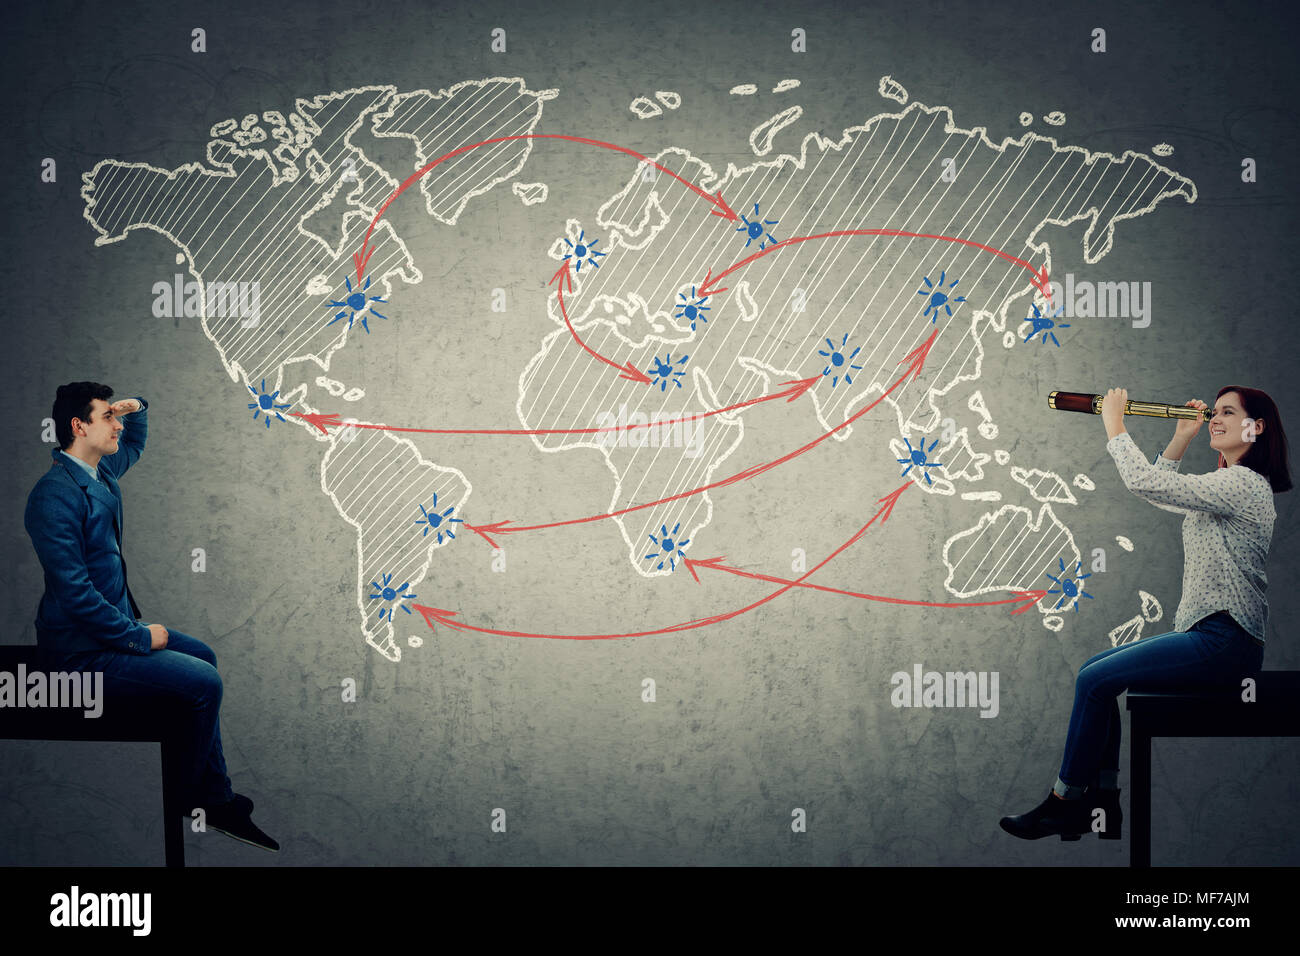 Global business concept as an young man and woman searching for a route on the worlds map. - Stock Image